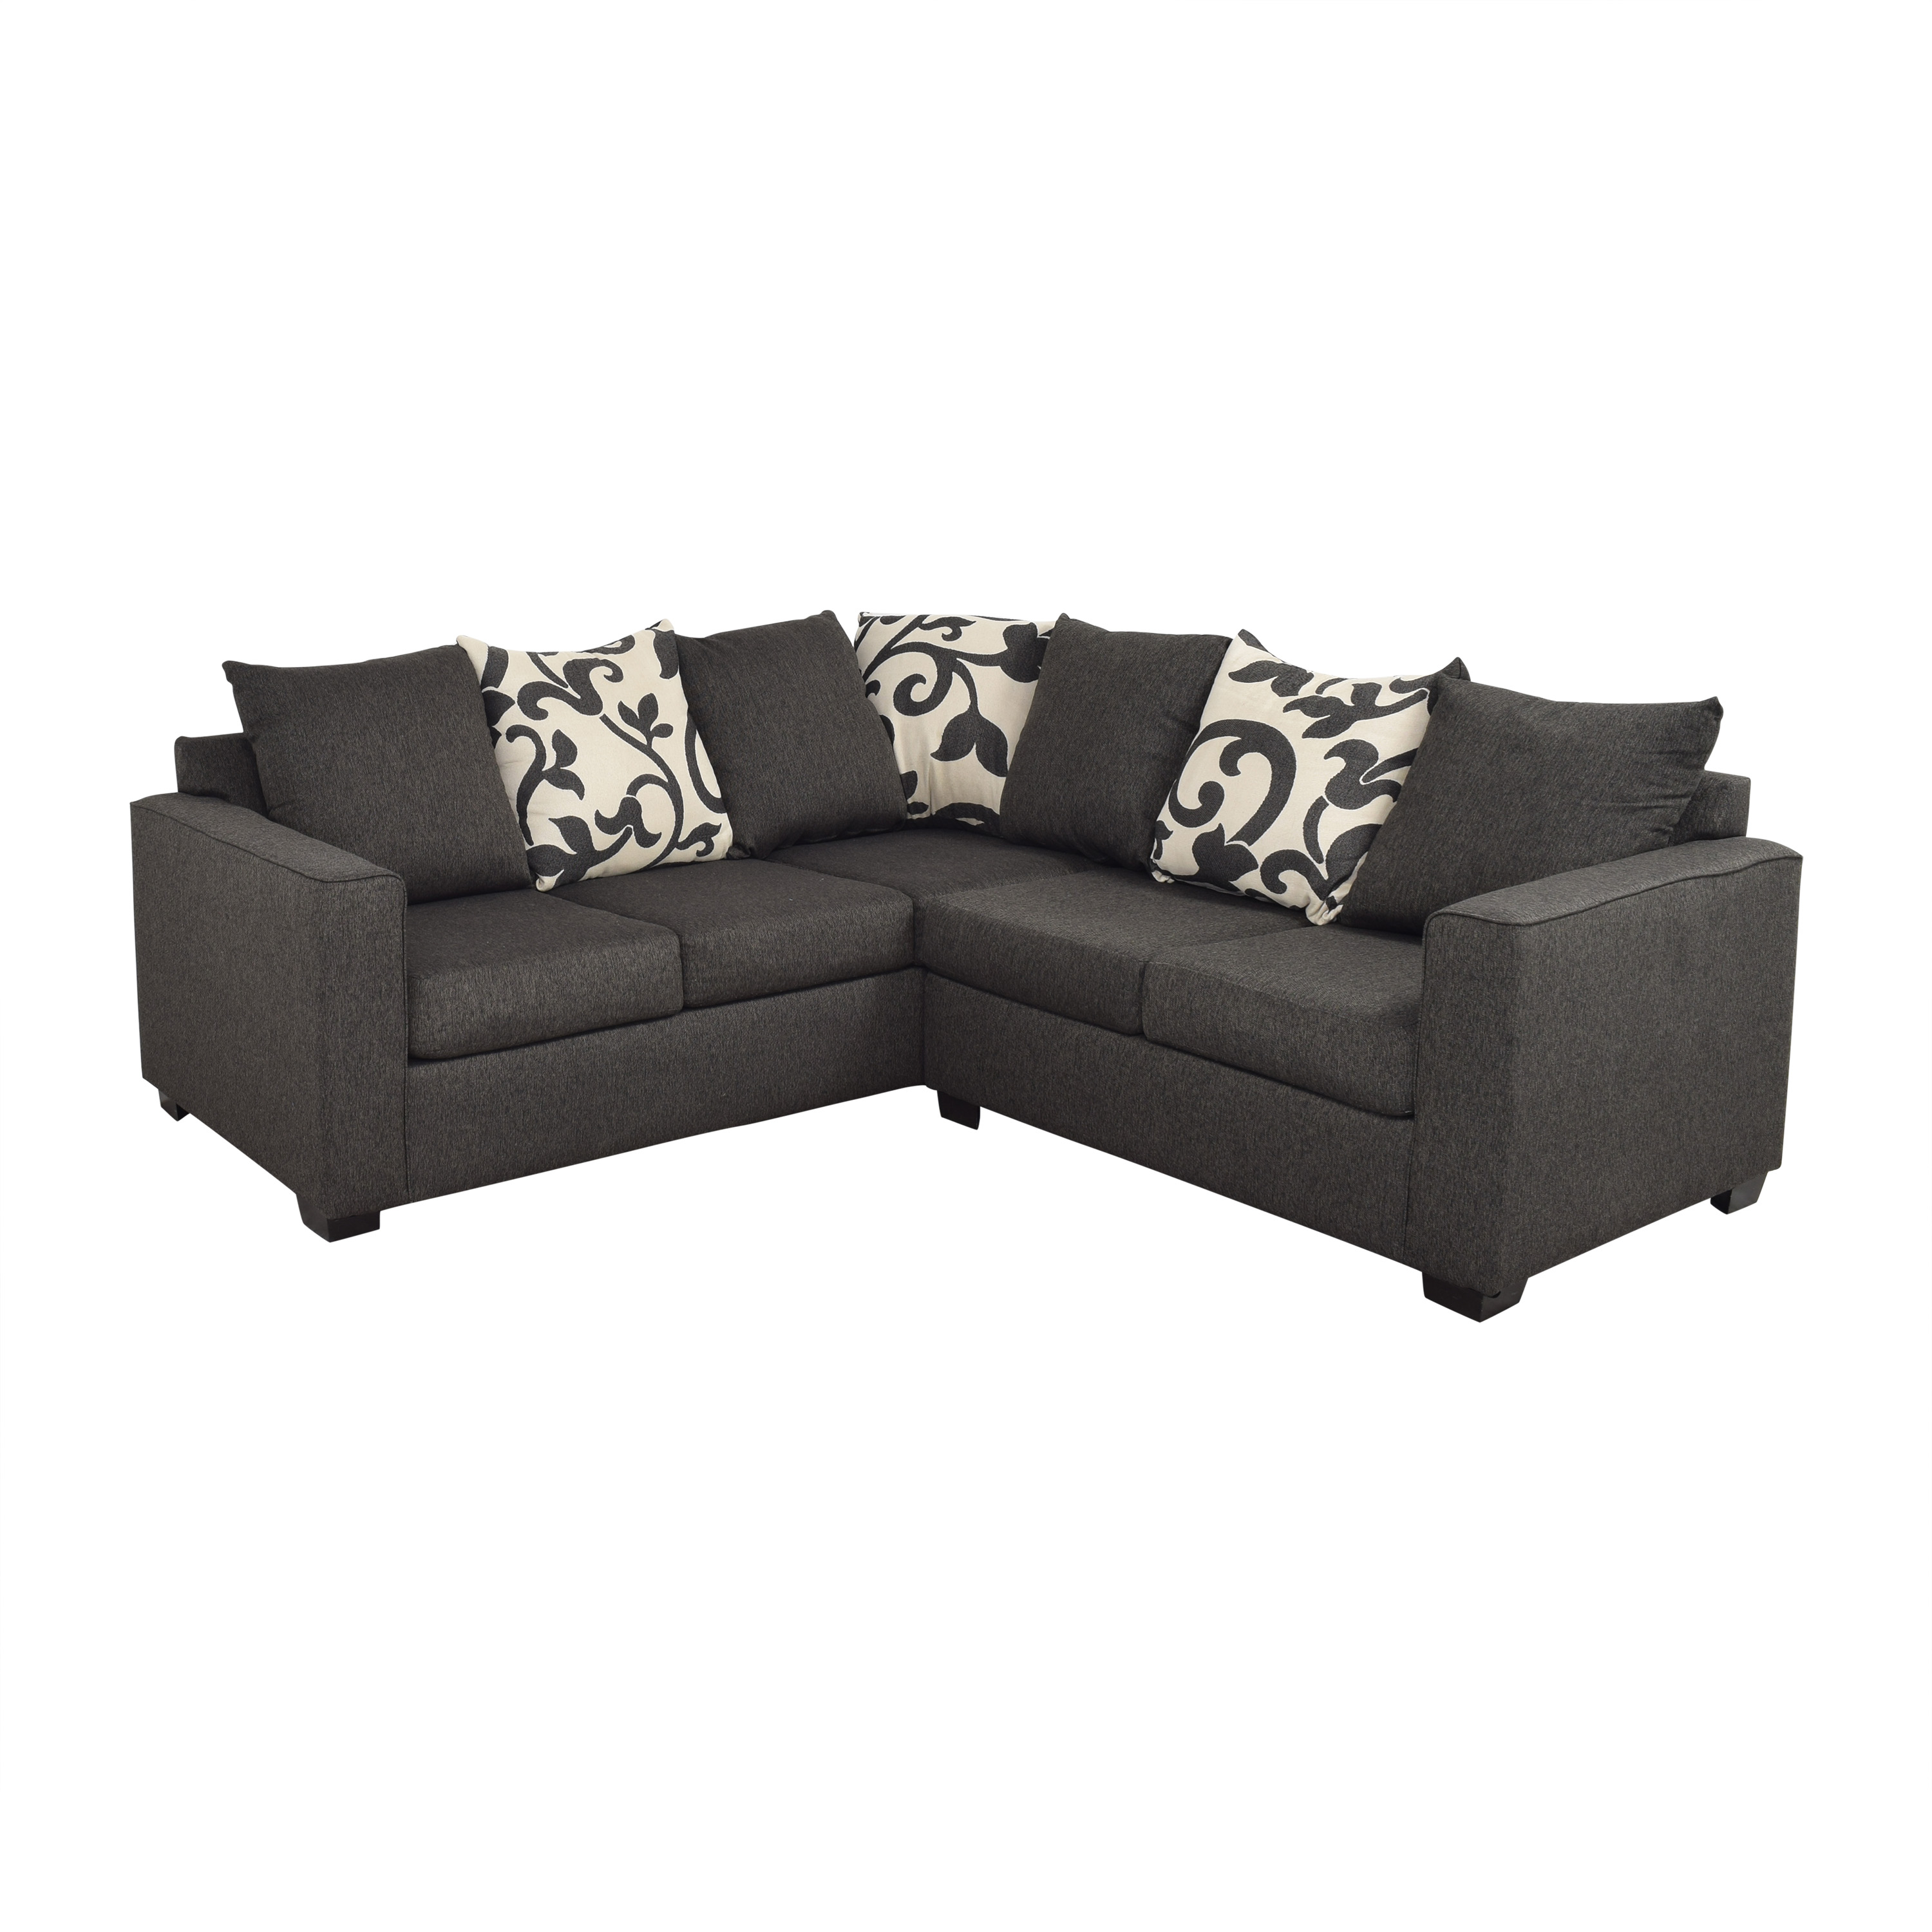 Furniture of America Furniture of America Lleida Two Piece Sectional Sofa nj